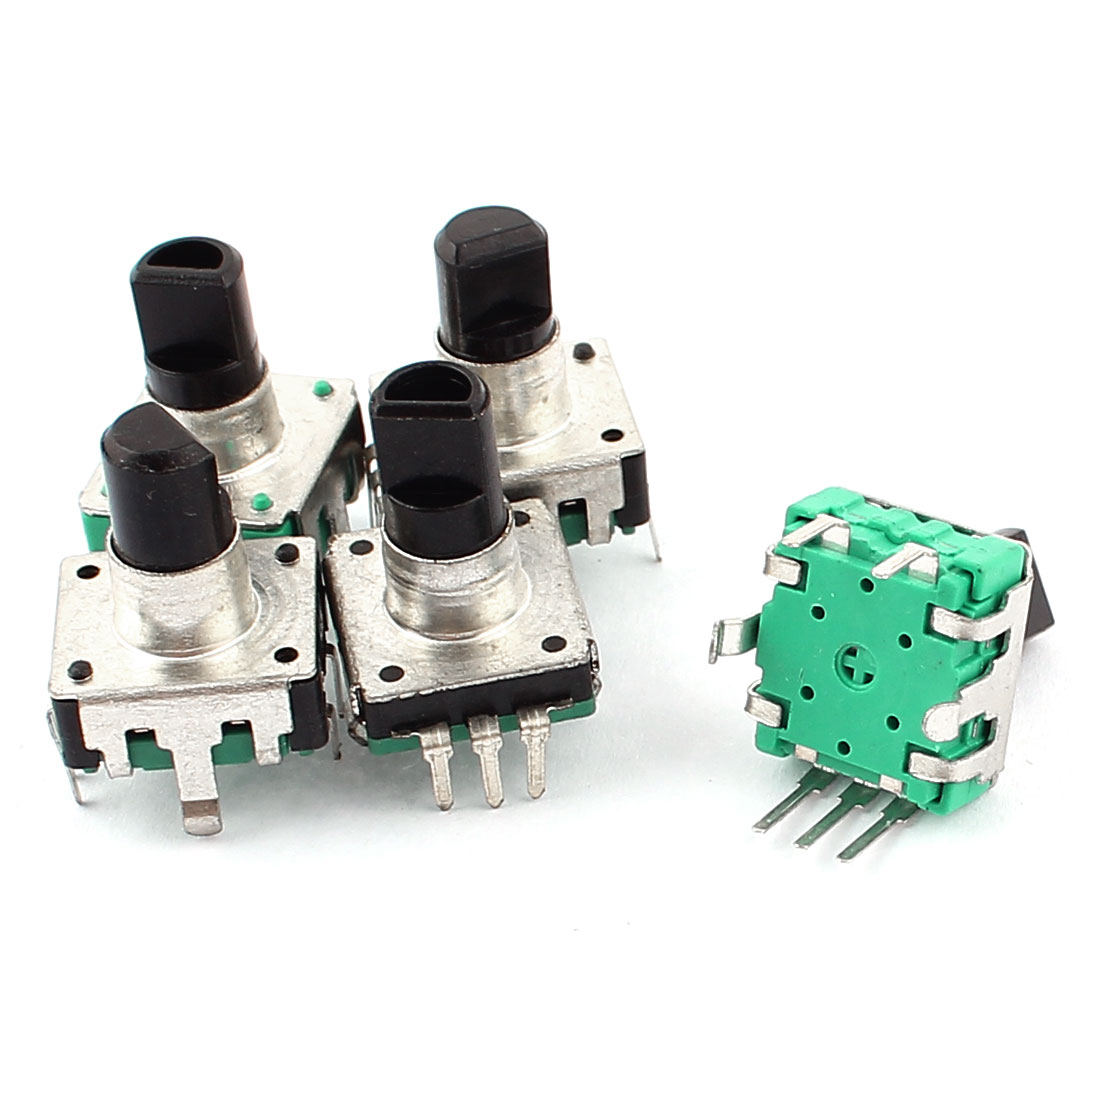 5pcs 24 Positions 5mm Black Rotary Shaft Encoder Push Button Switch Keyswitch Electronic Components